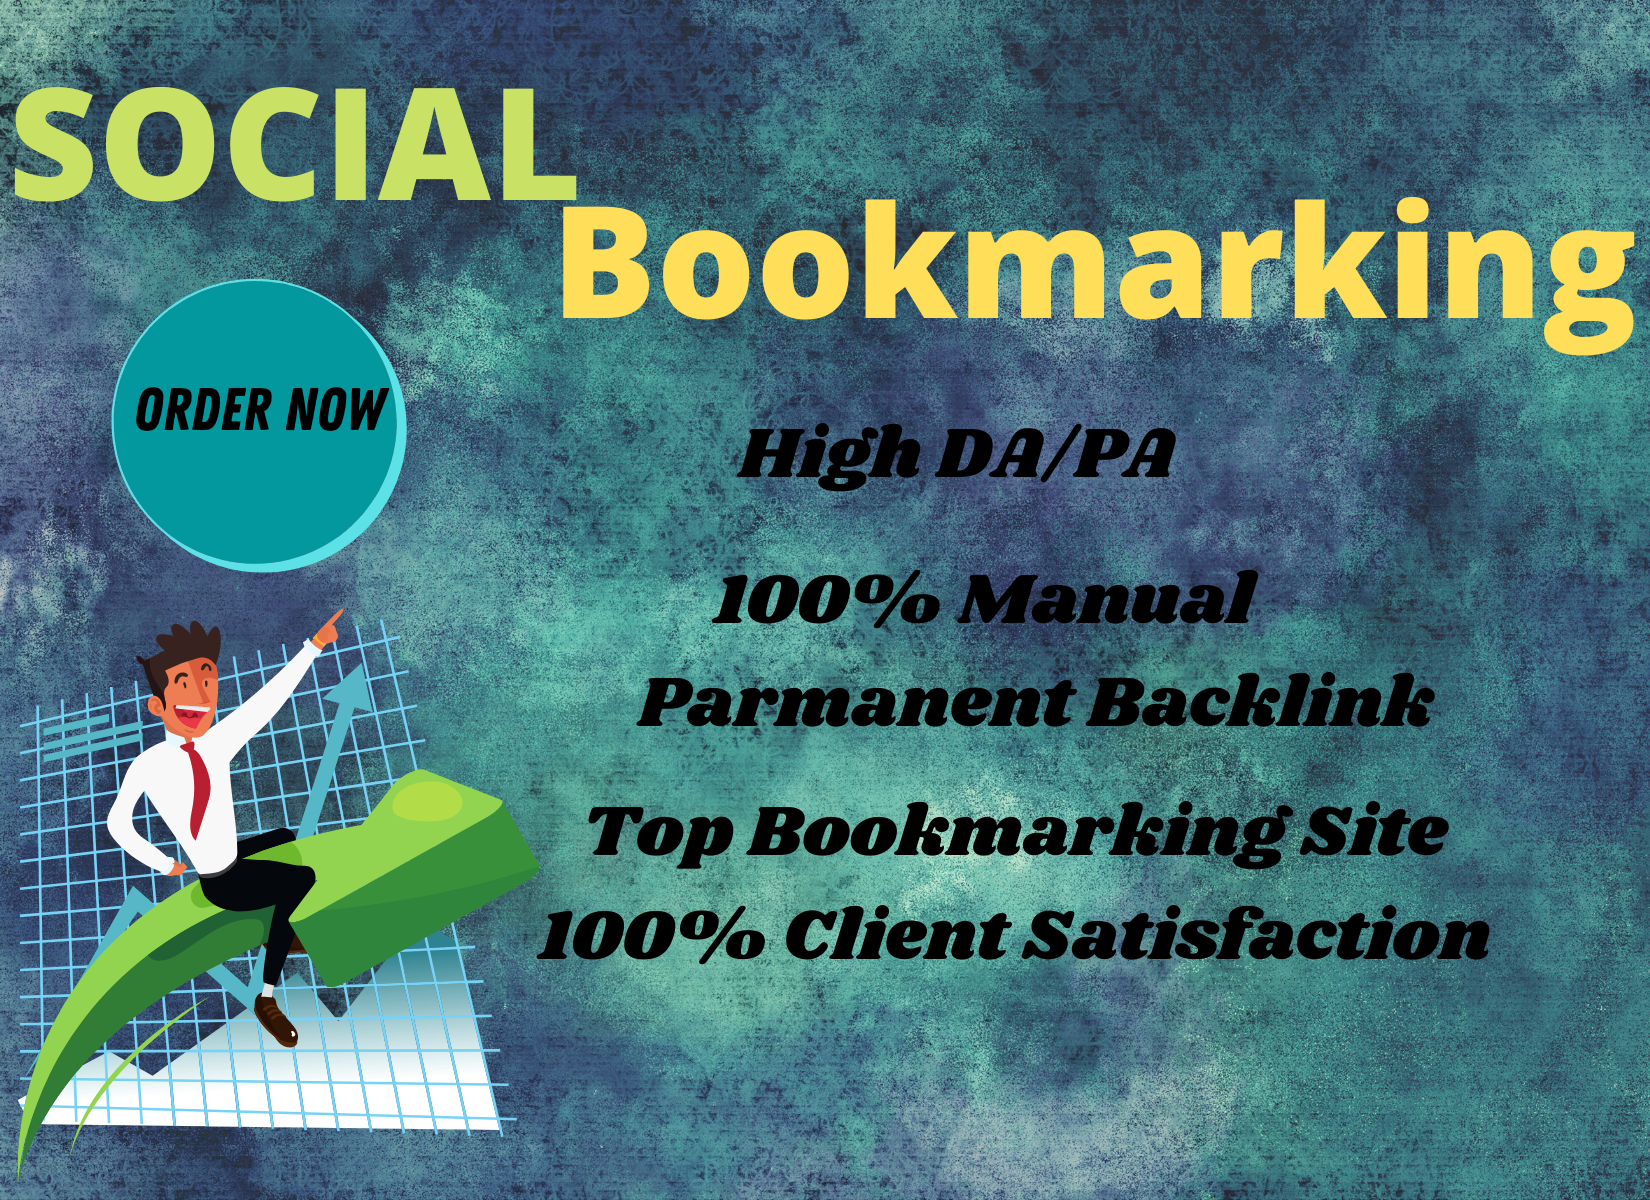 I will create manually 15 social bookmarking for traffic boosting